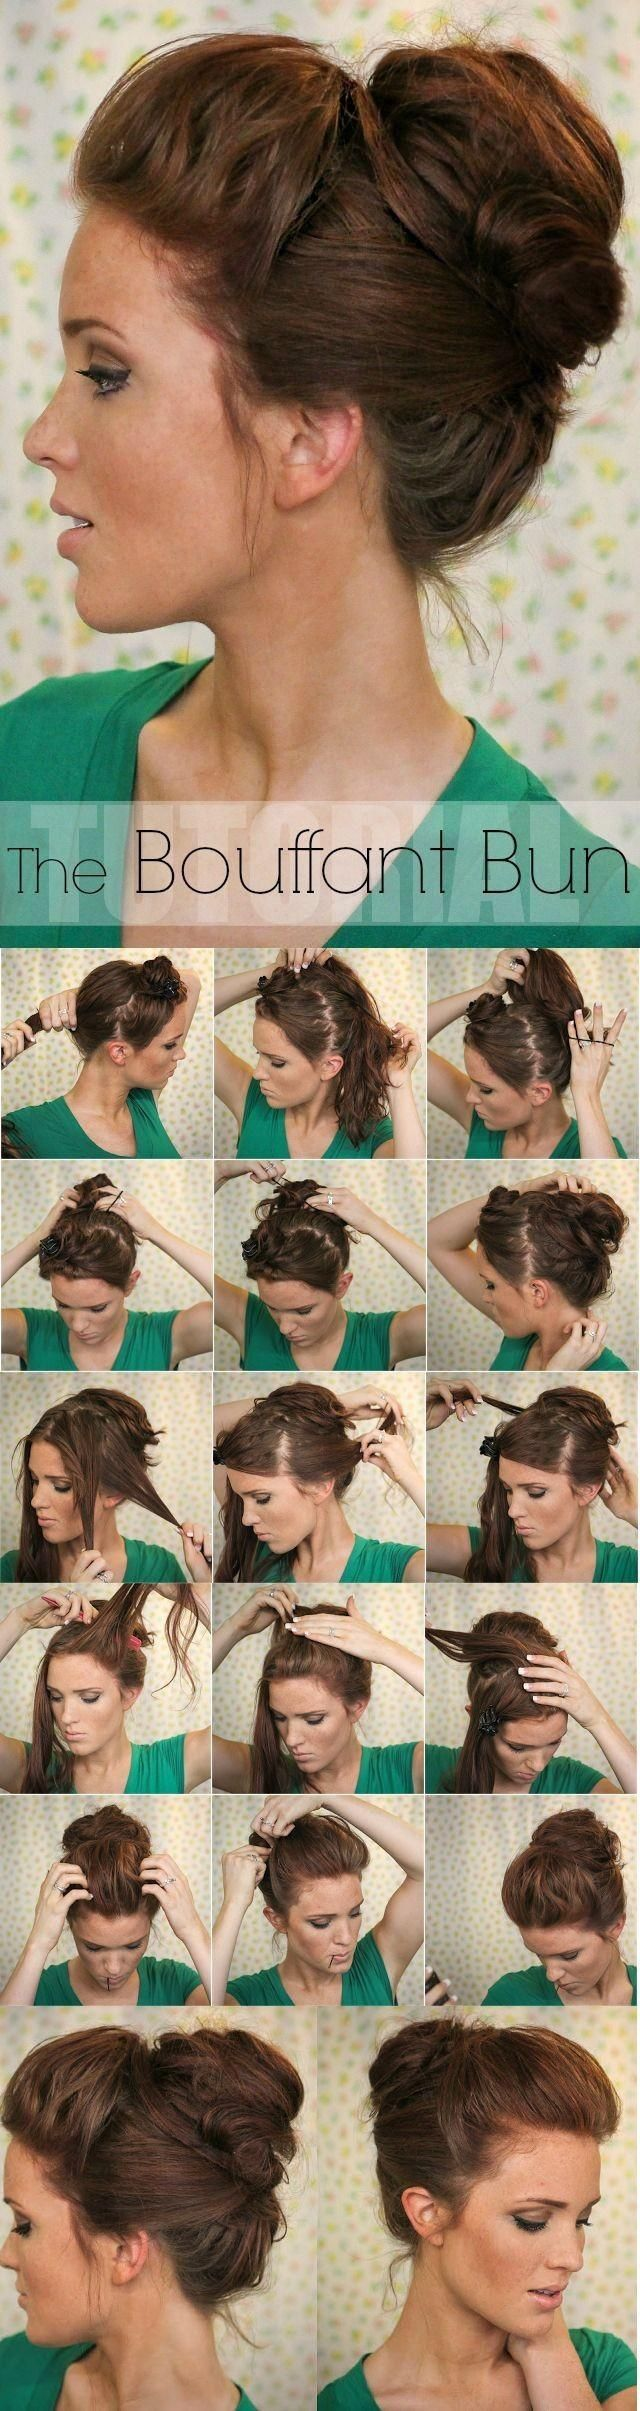 Brides With Sass Hair Styles - Weddbook